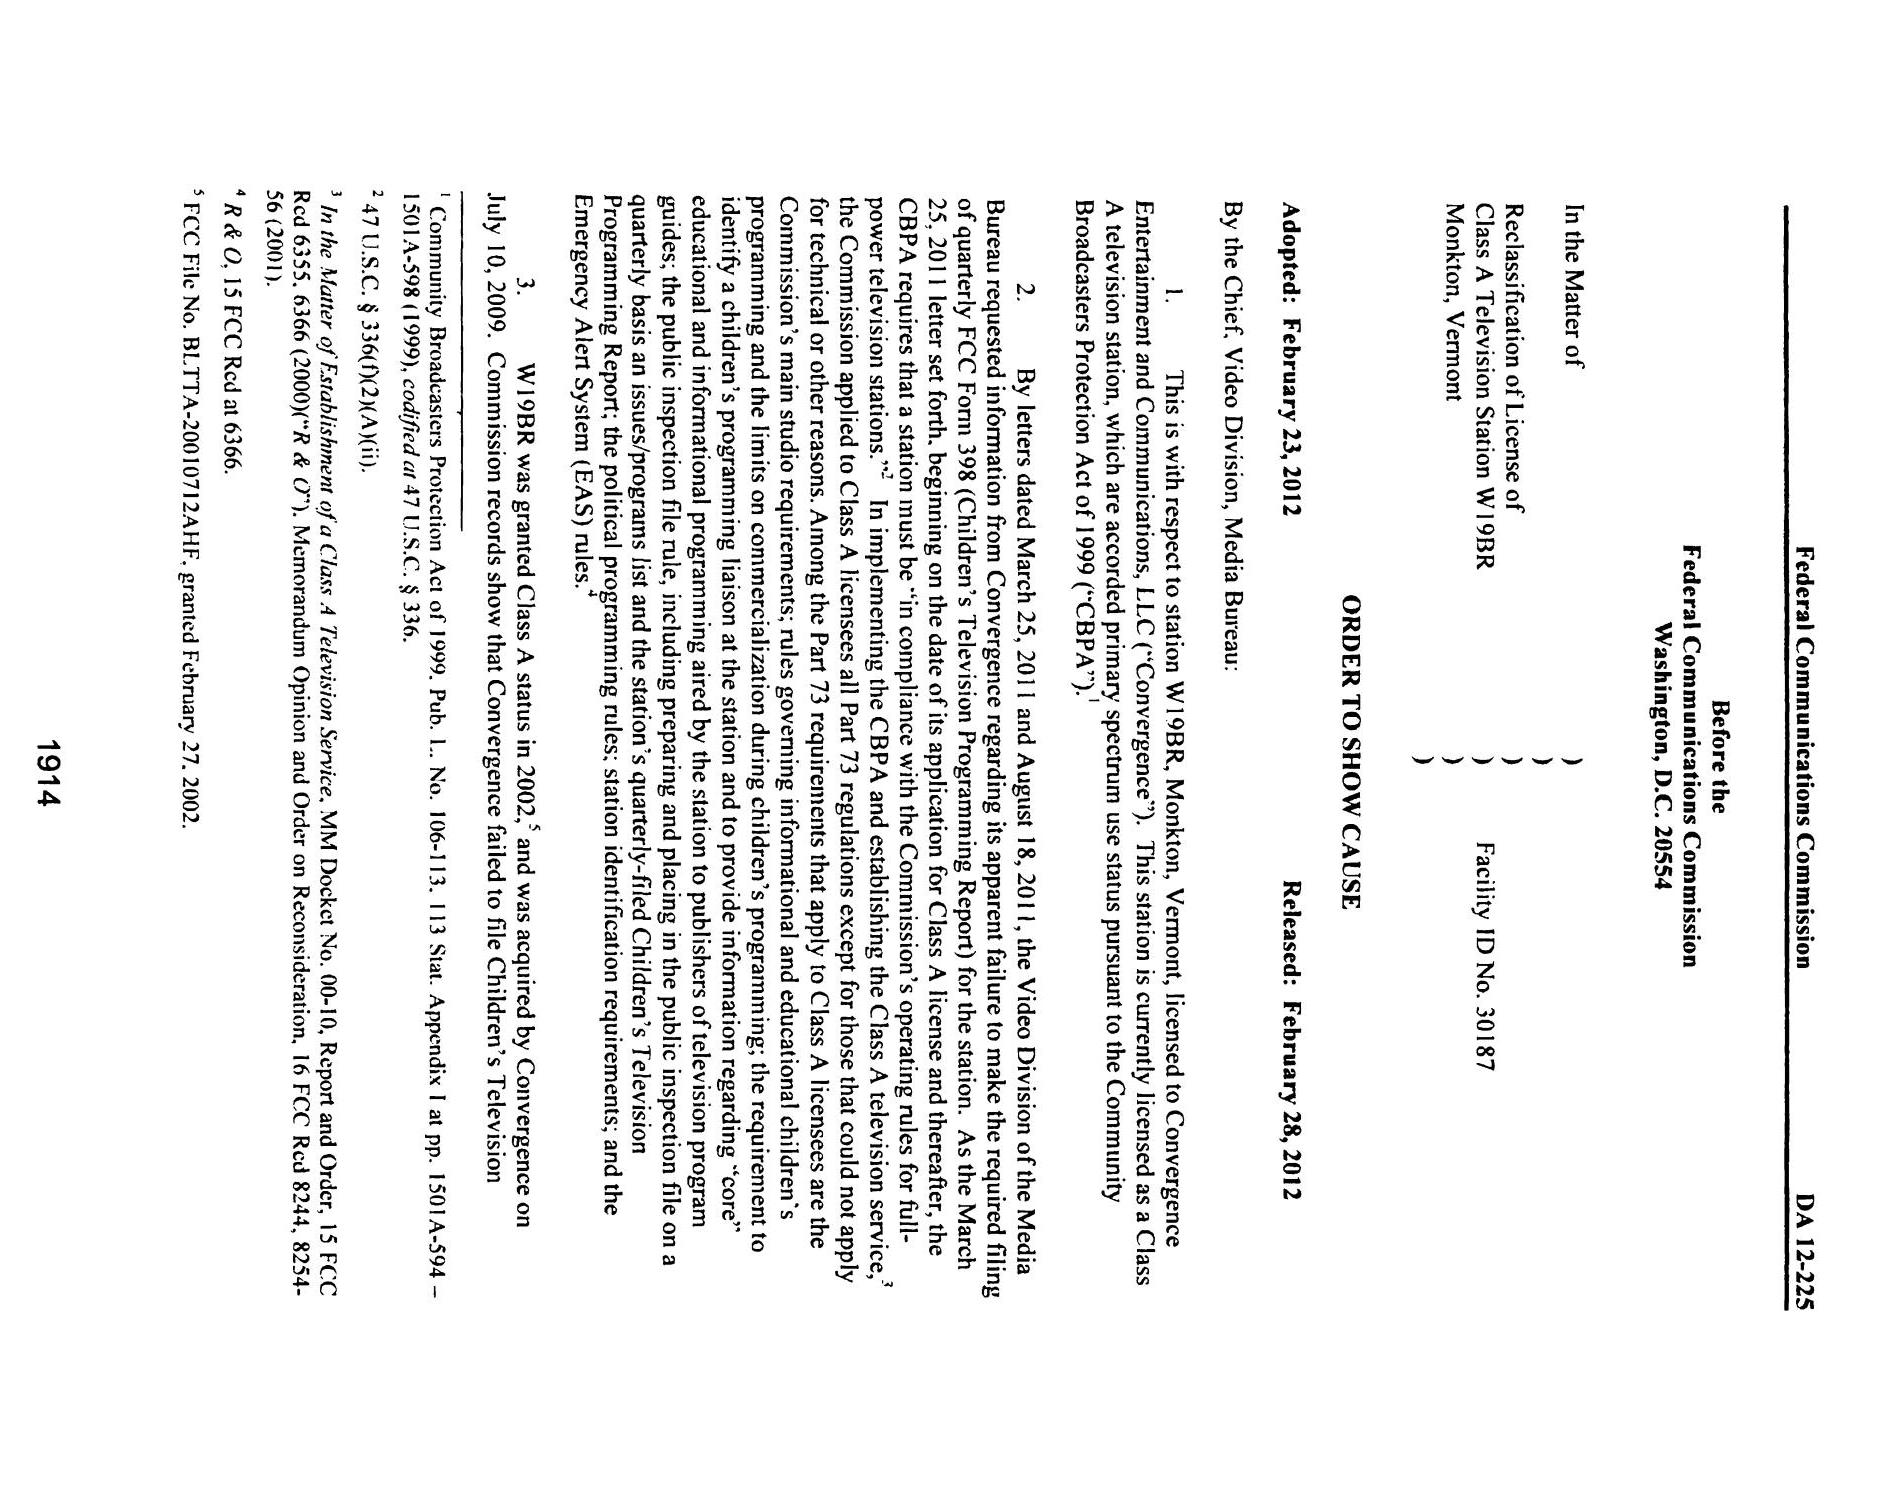 FCC Record, Volume 27, No. 3, Pages 1878 to 2785, February 21 - March 16, 2012                                                                                                      1914